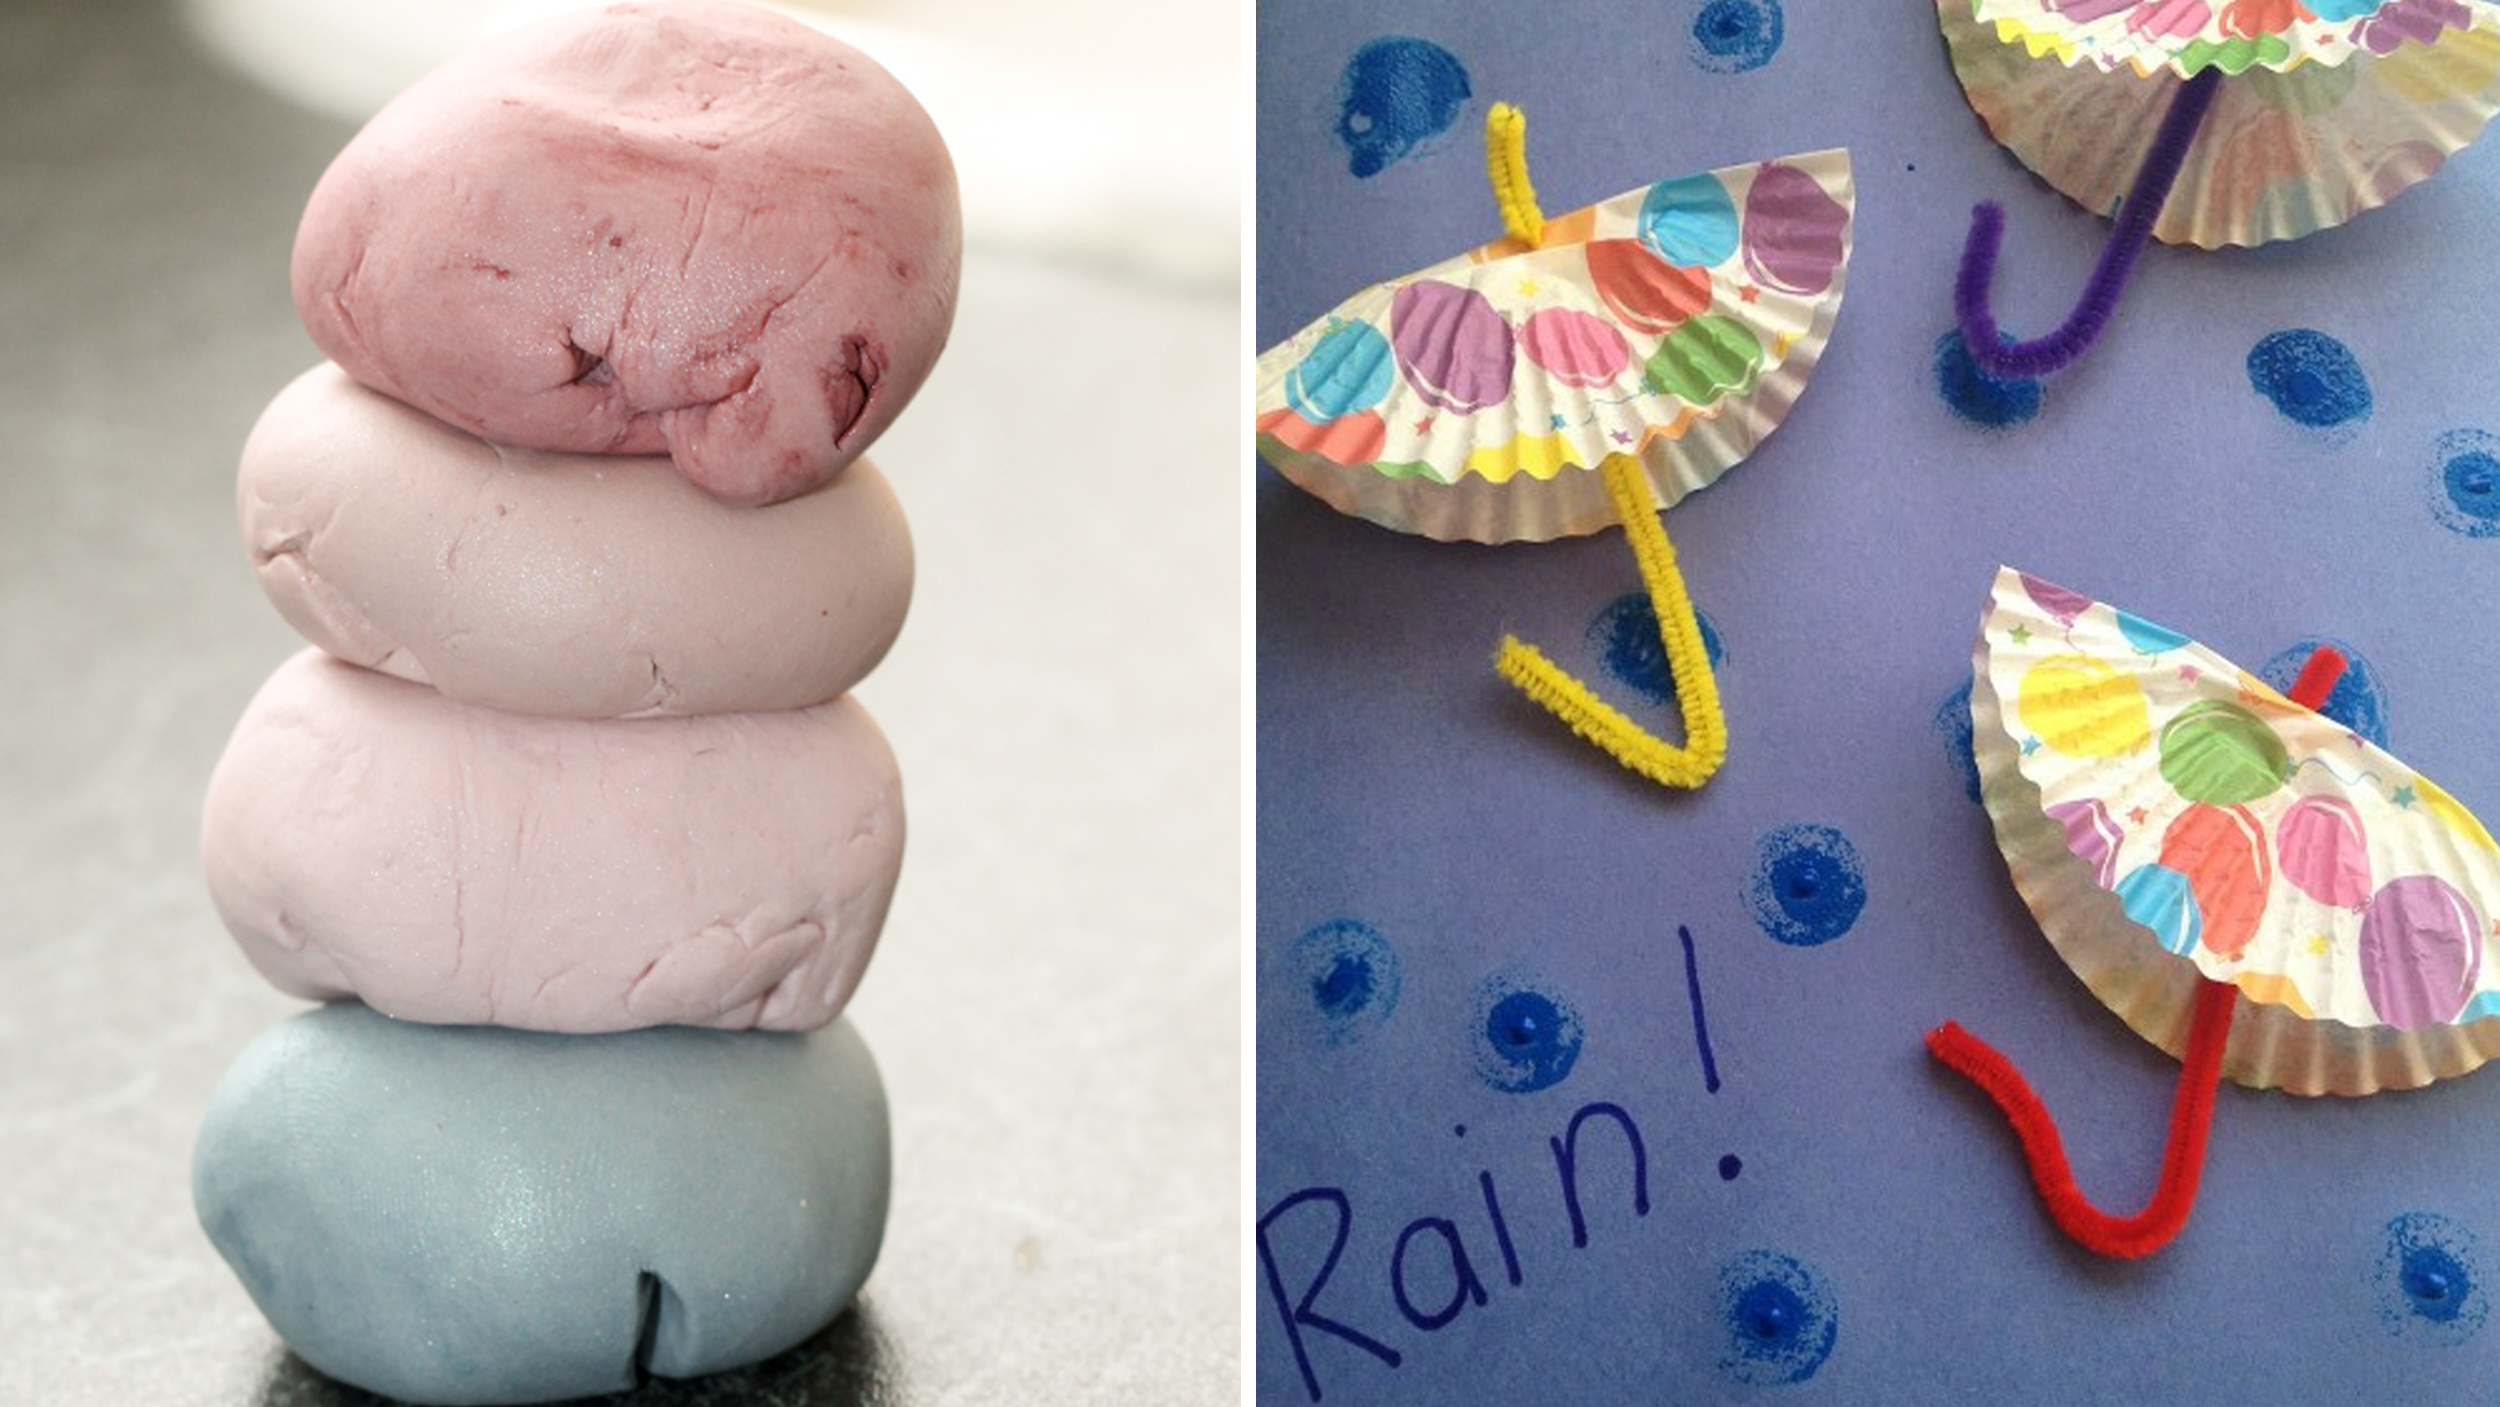 Diy Pinterest 7 Rainy Day Pinterest Crafts To Do With Your Kids